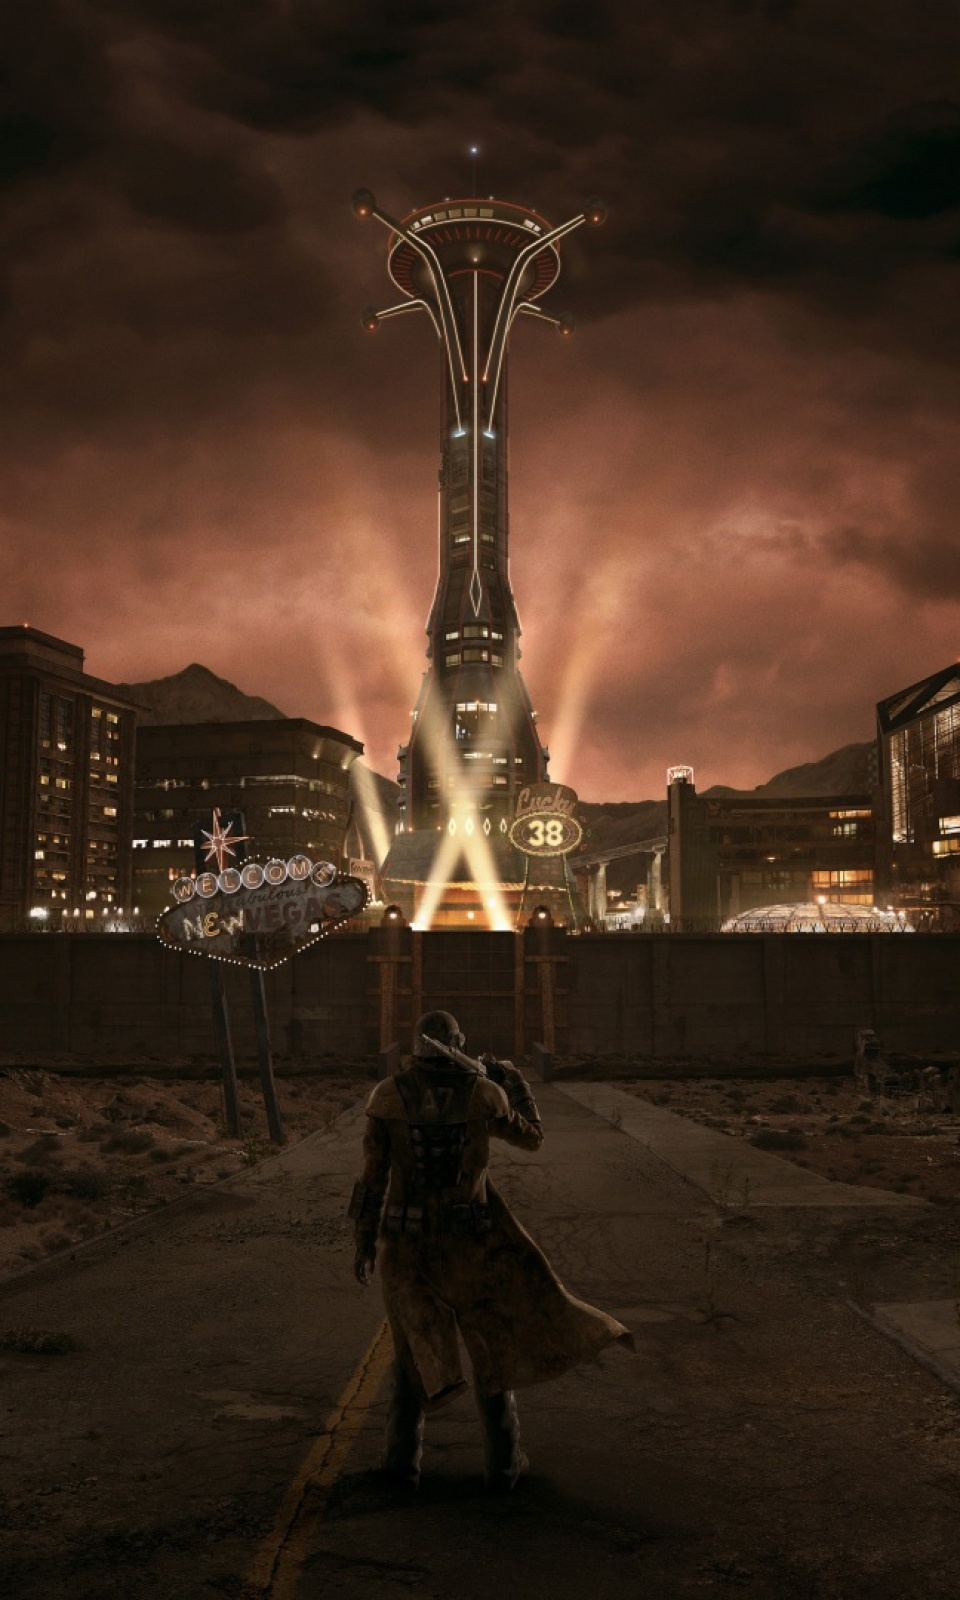 fallout new vegas mobile wallpaper - mobiles wall